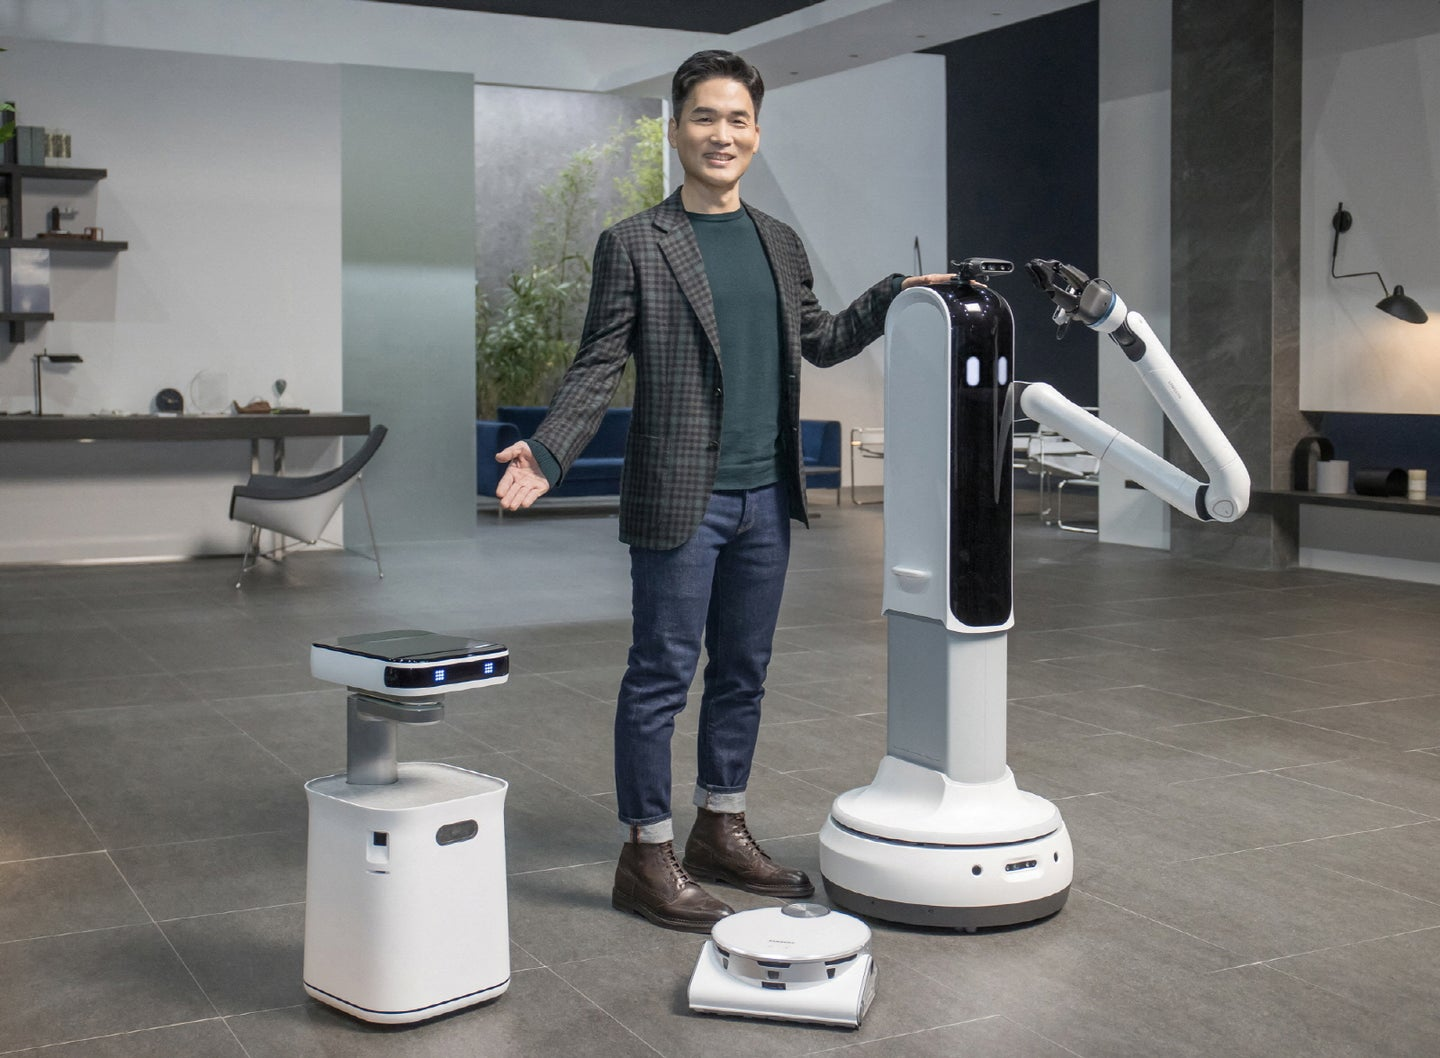 Samsung's new helpful robots at CES 2021.